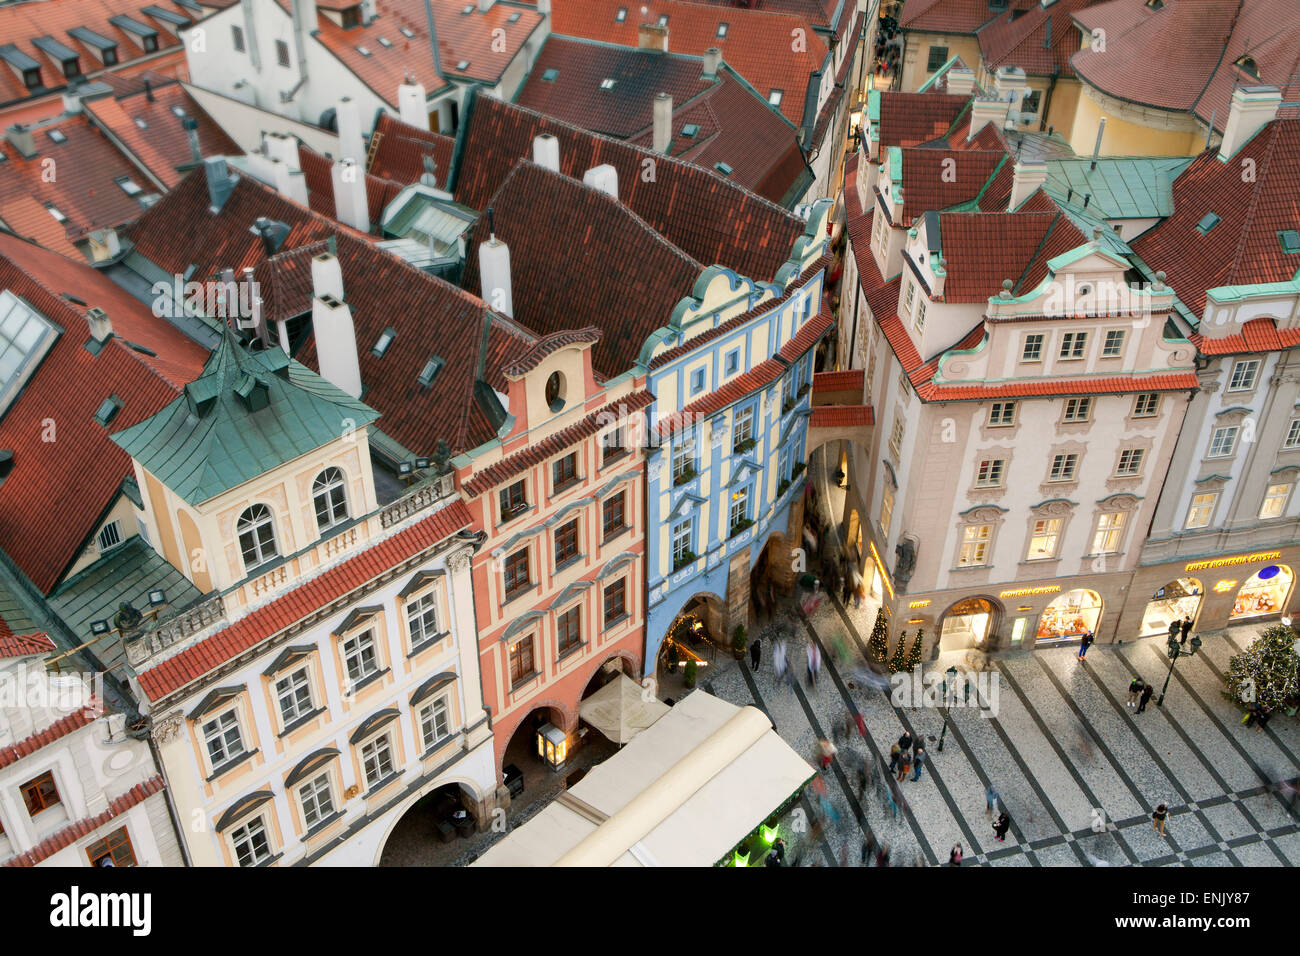 Overview of buildings on the Old Town Square, UNESCO World Heritage Site, Prague, Czech Republic, Europe - Stock Image